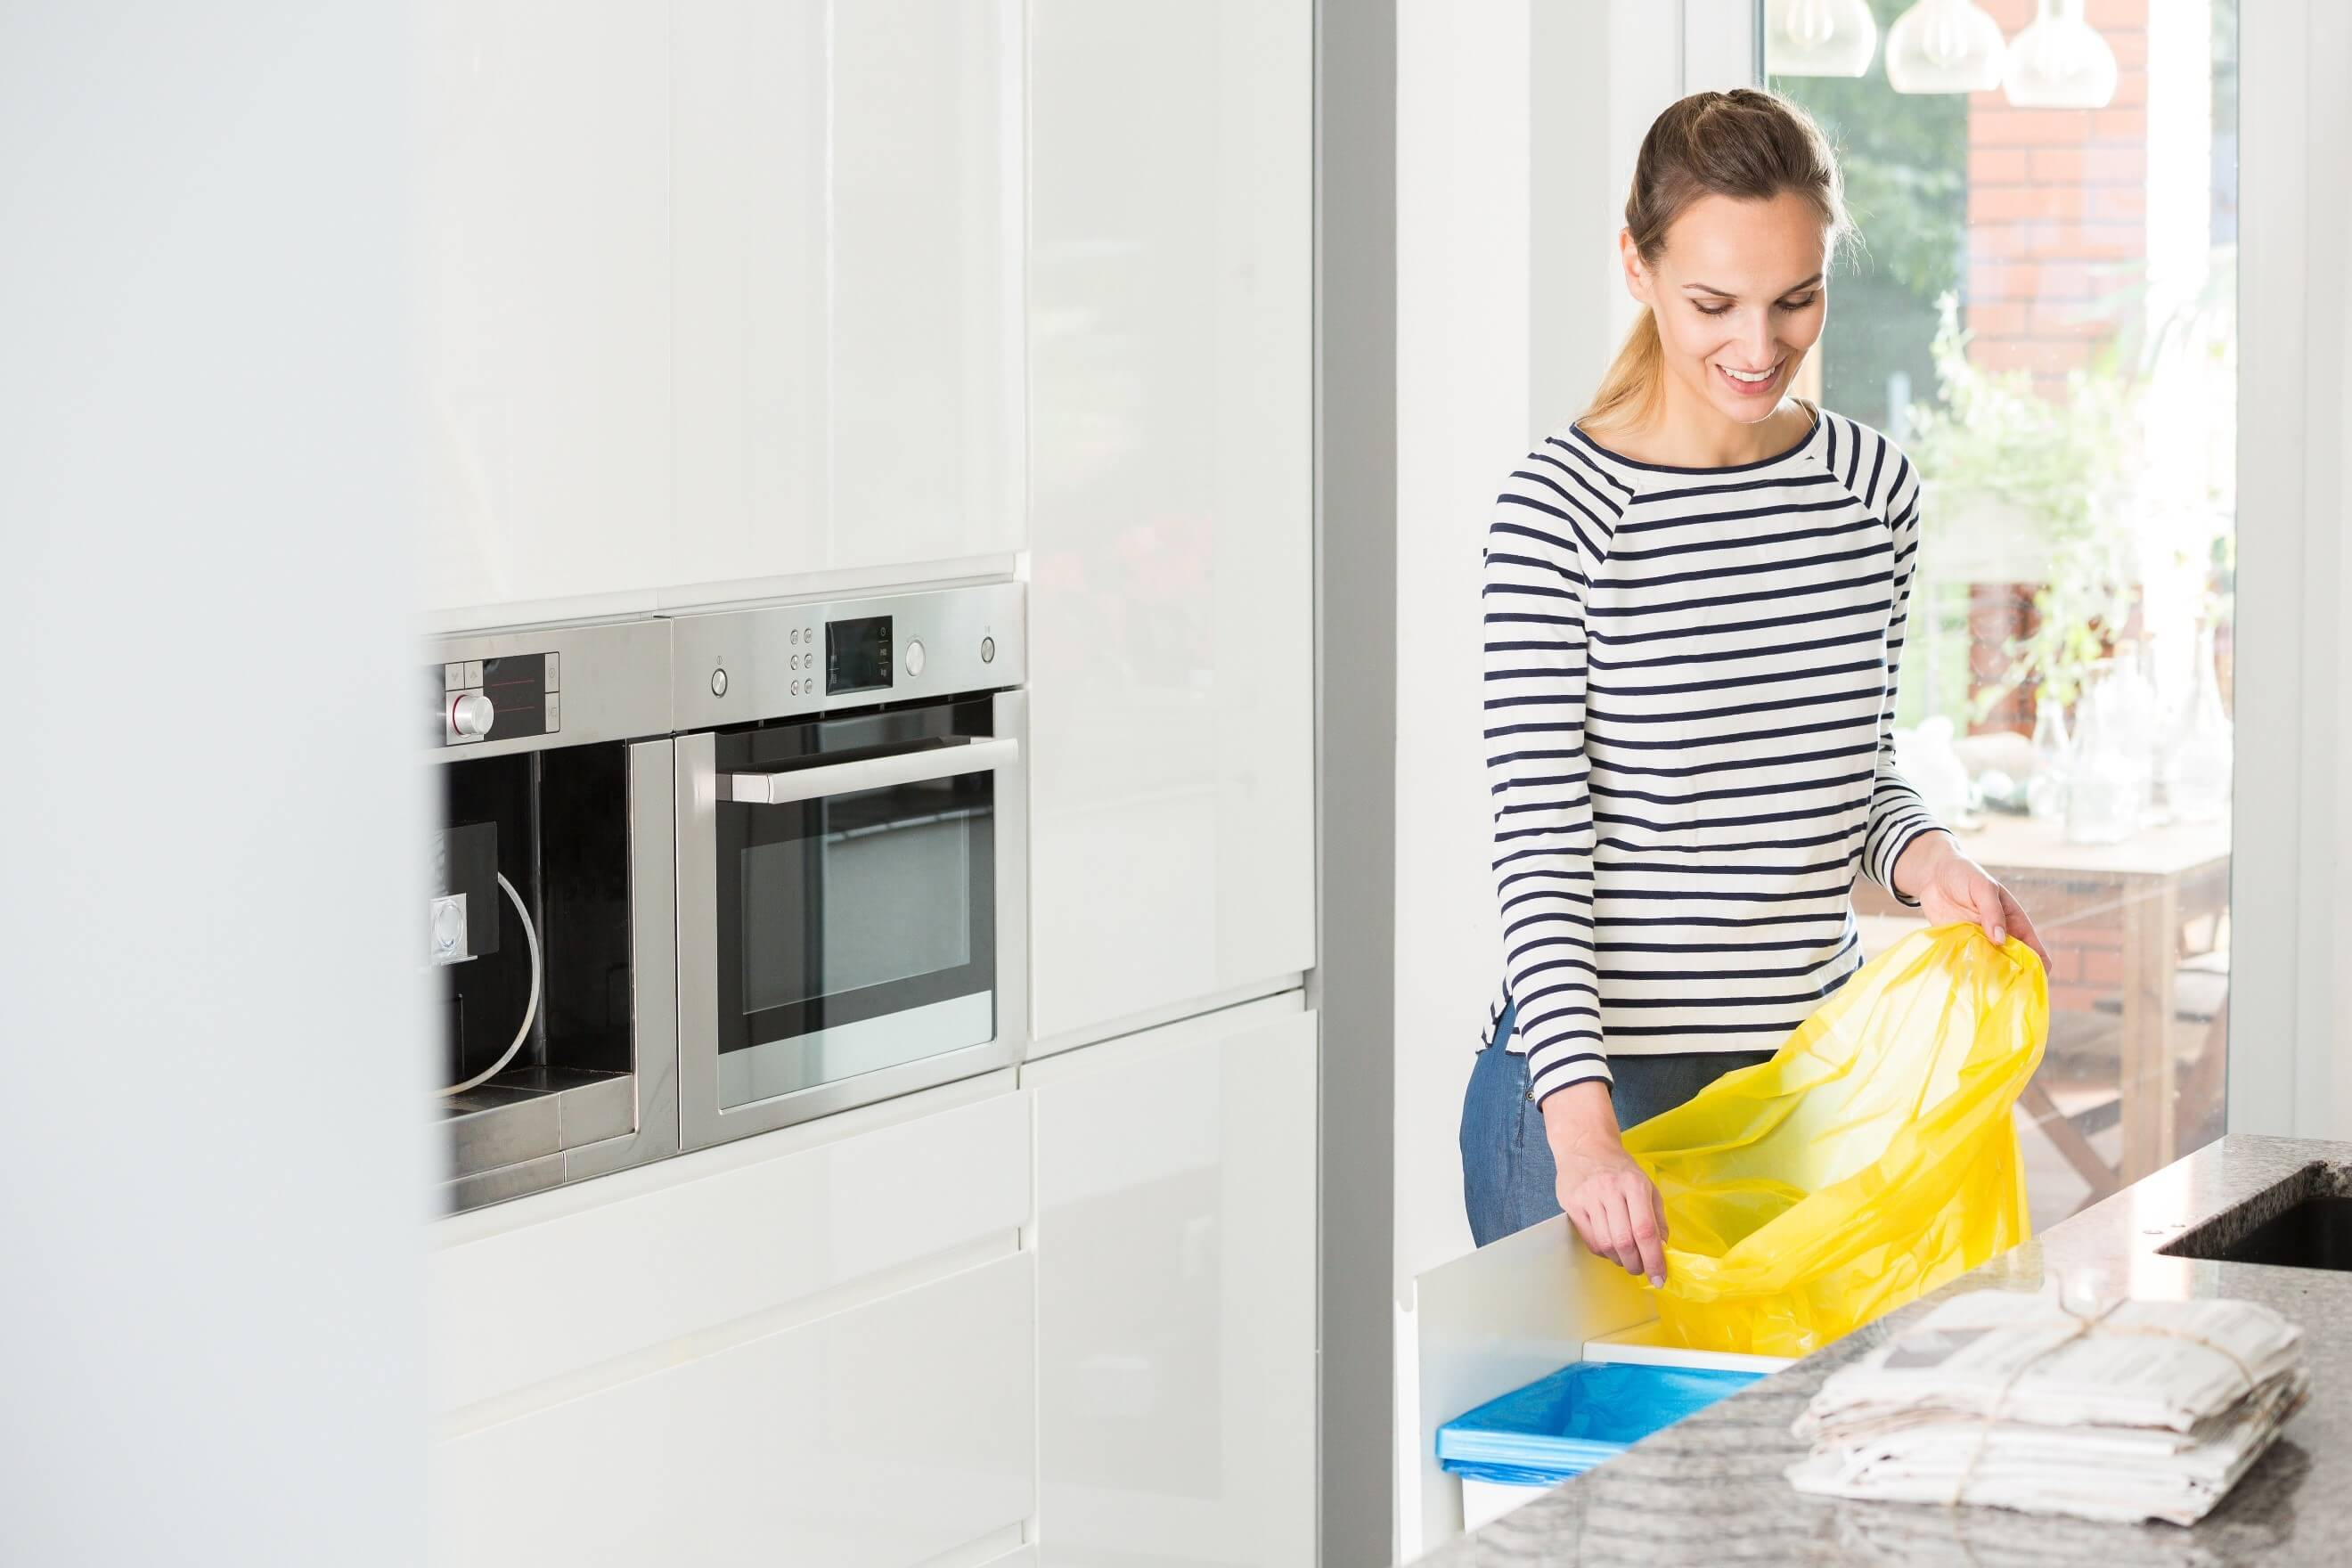 separate bins for recycling in the kitchen